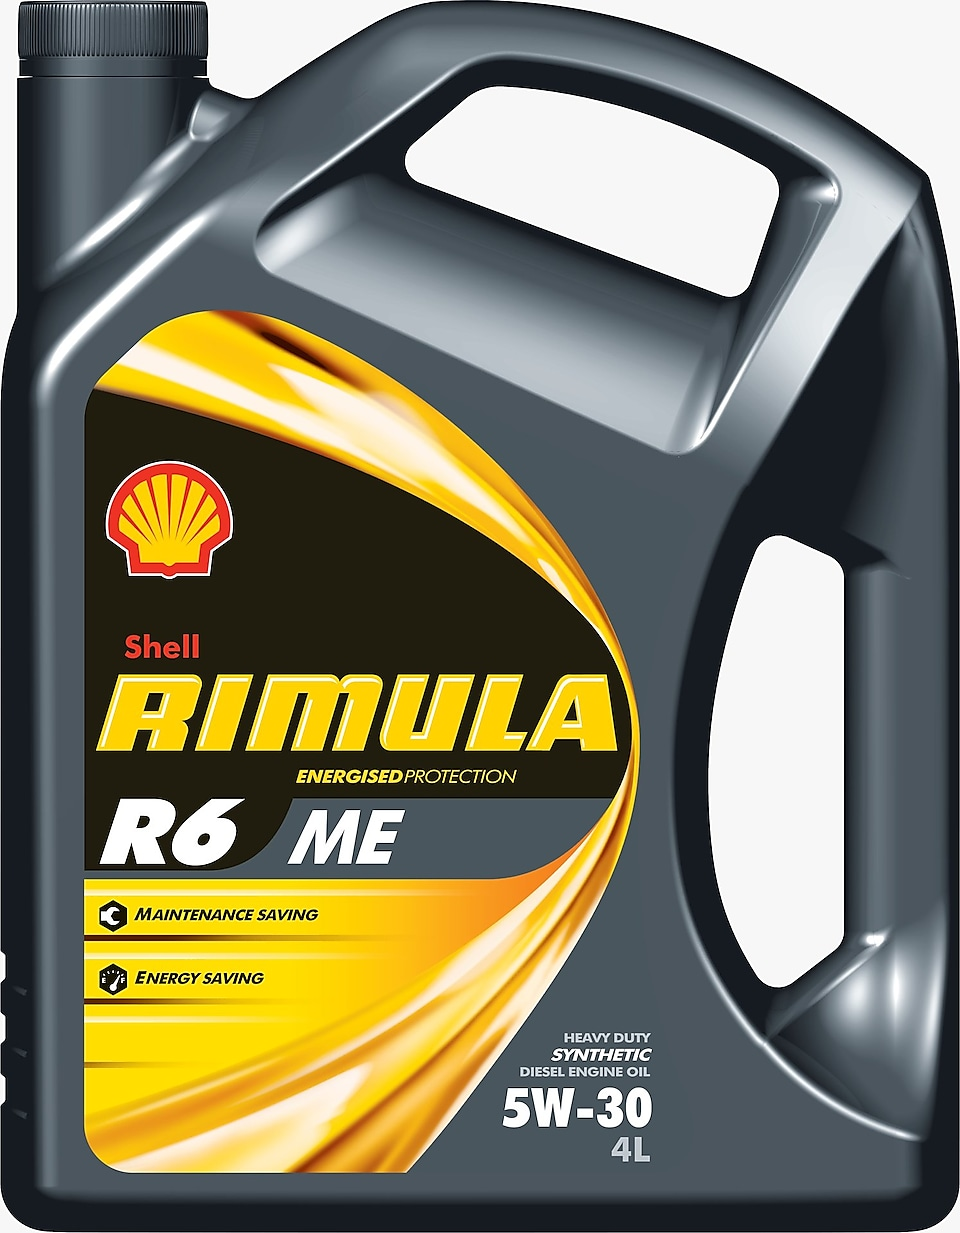 Packshot of Shell Rimula R6 ME